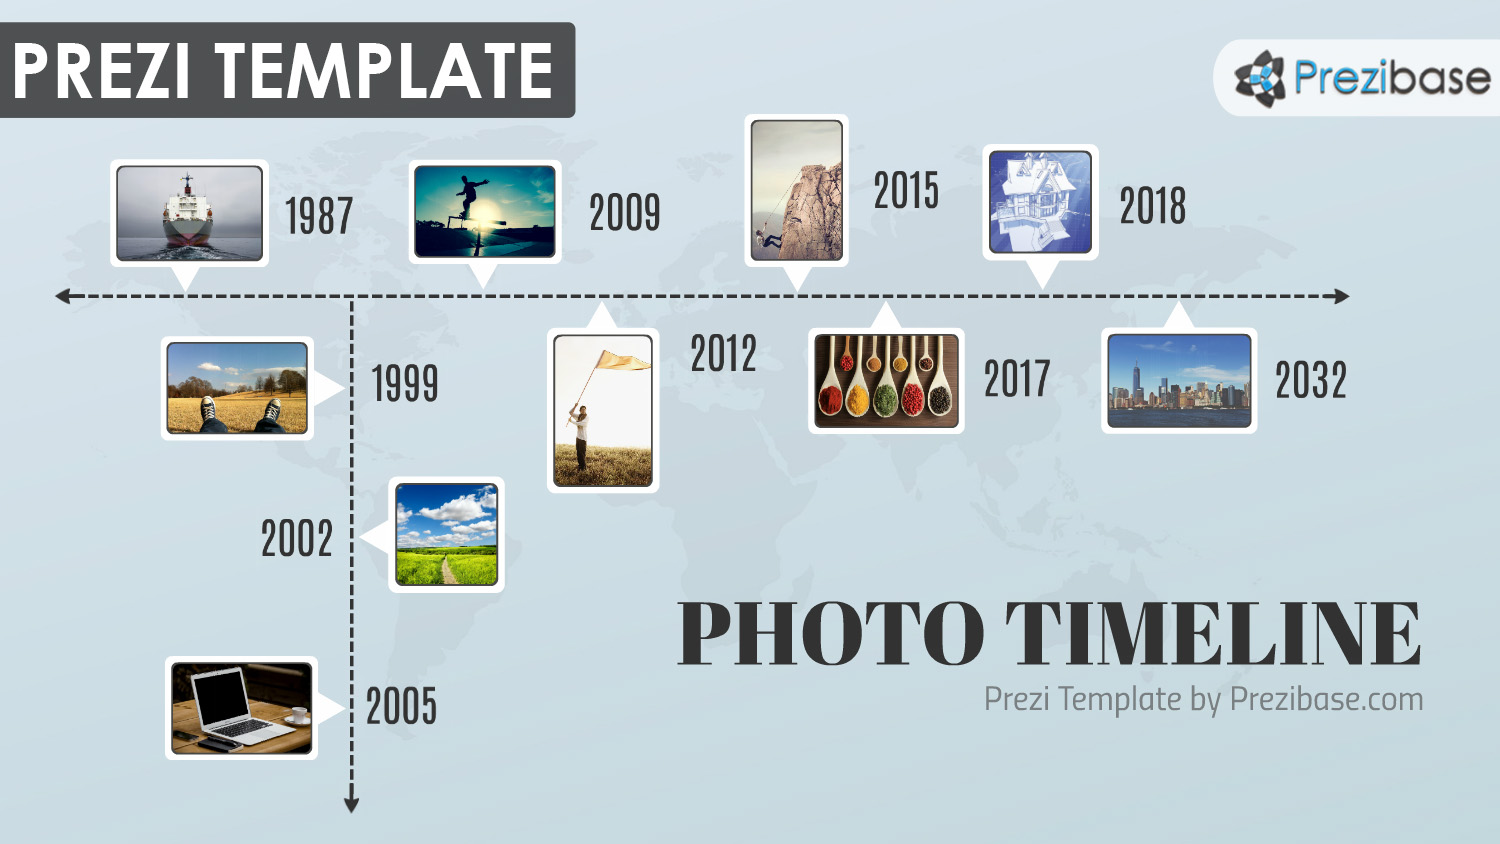 photo gallery timeline history business images slideshow prezi template